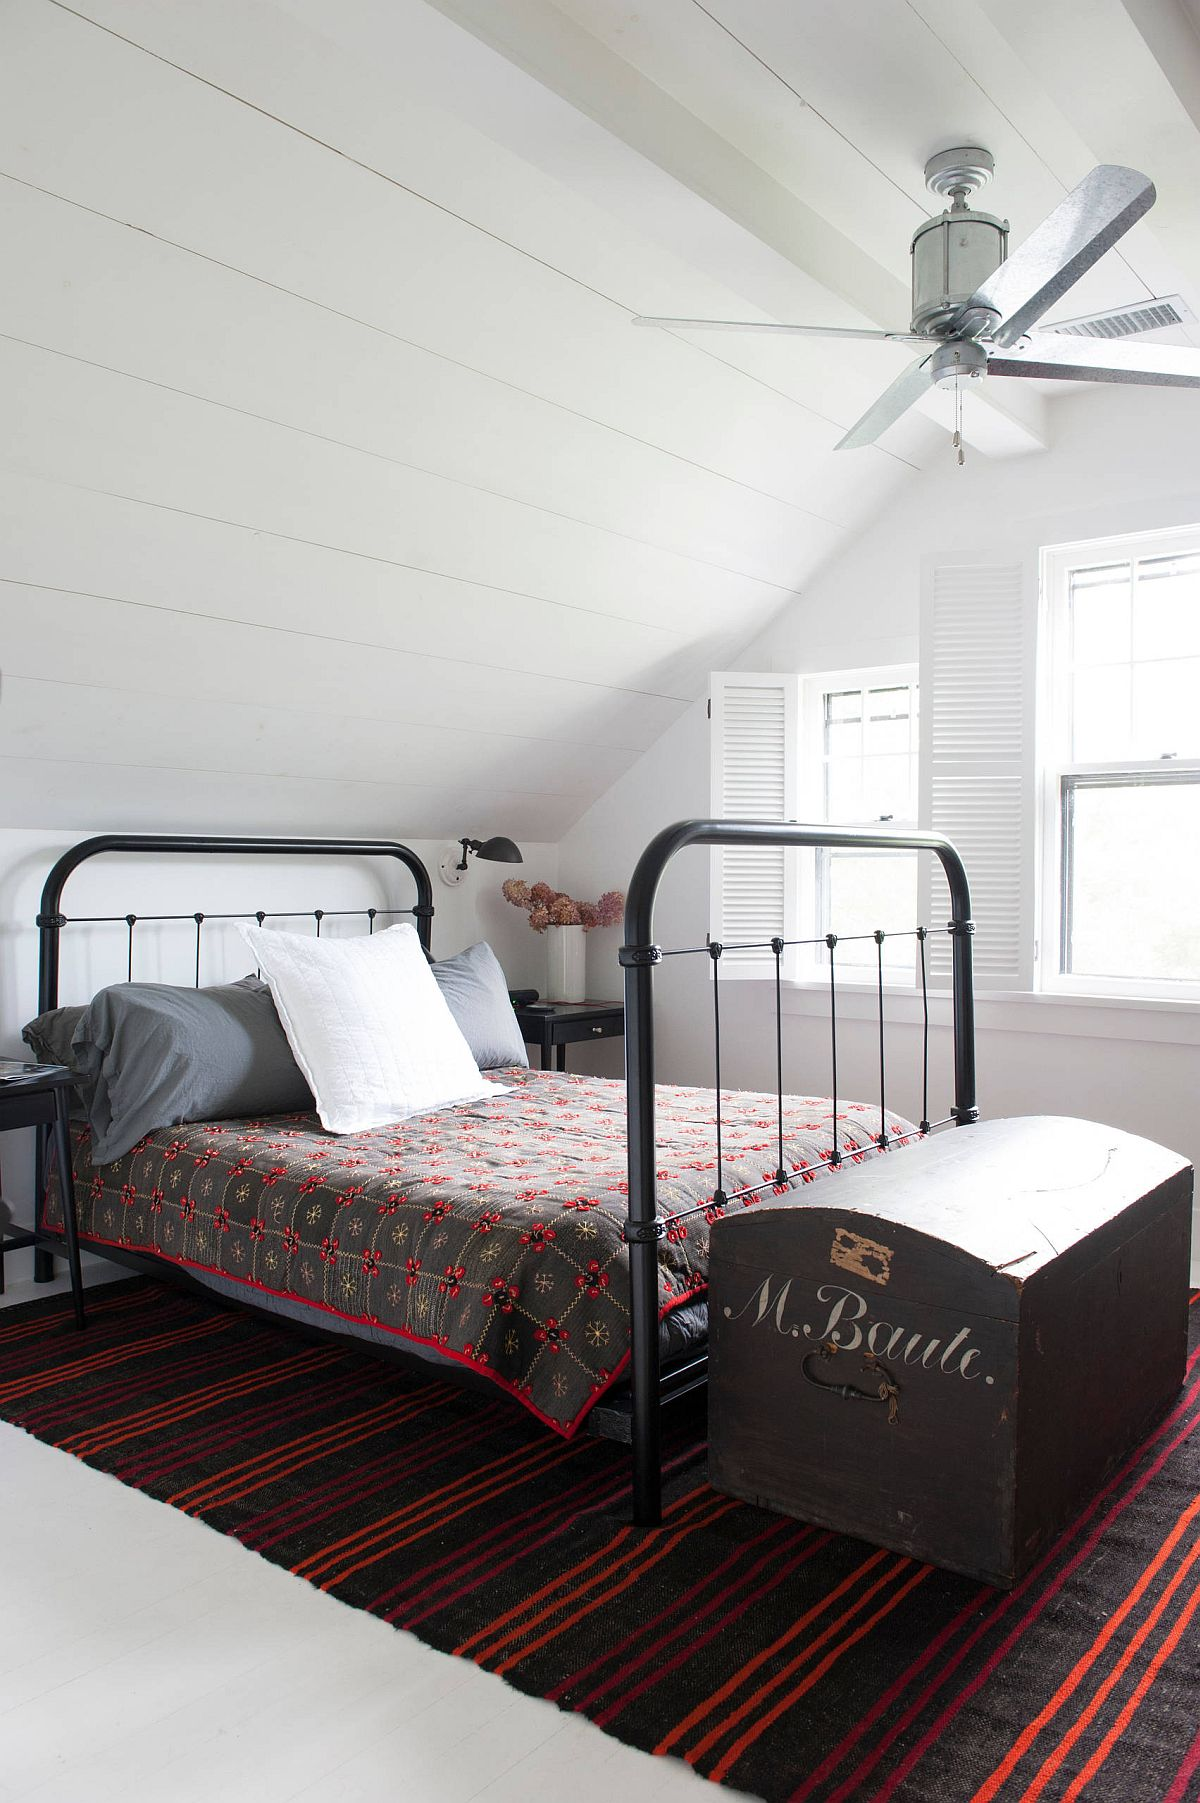 Attic-level-bedroom-of-the-New-York-home-with-modern-farmhouse-style-and-a-bright-rug-40312